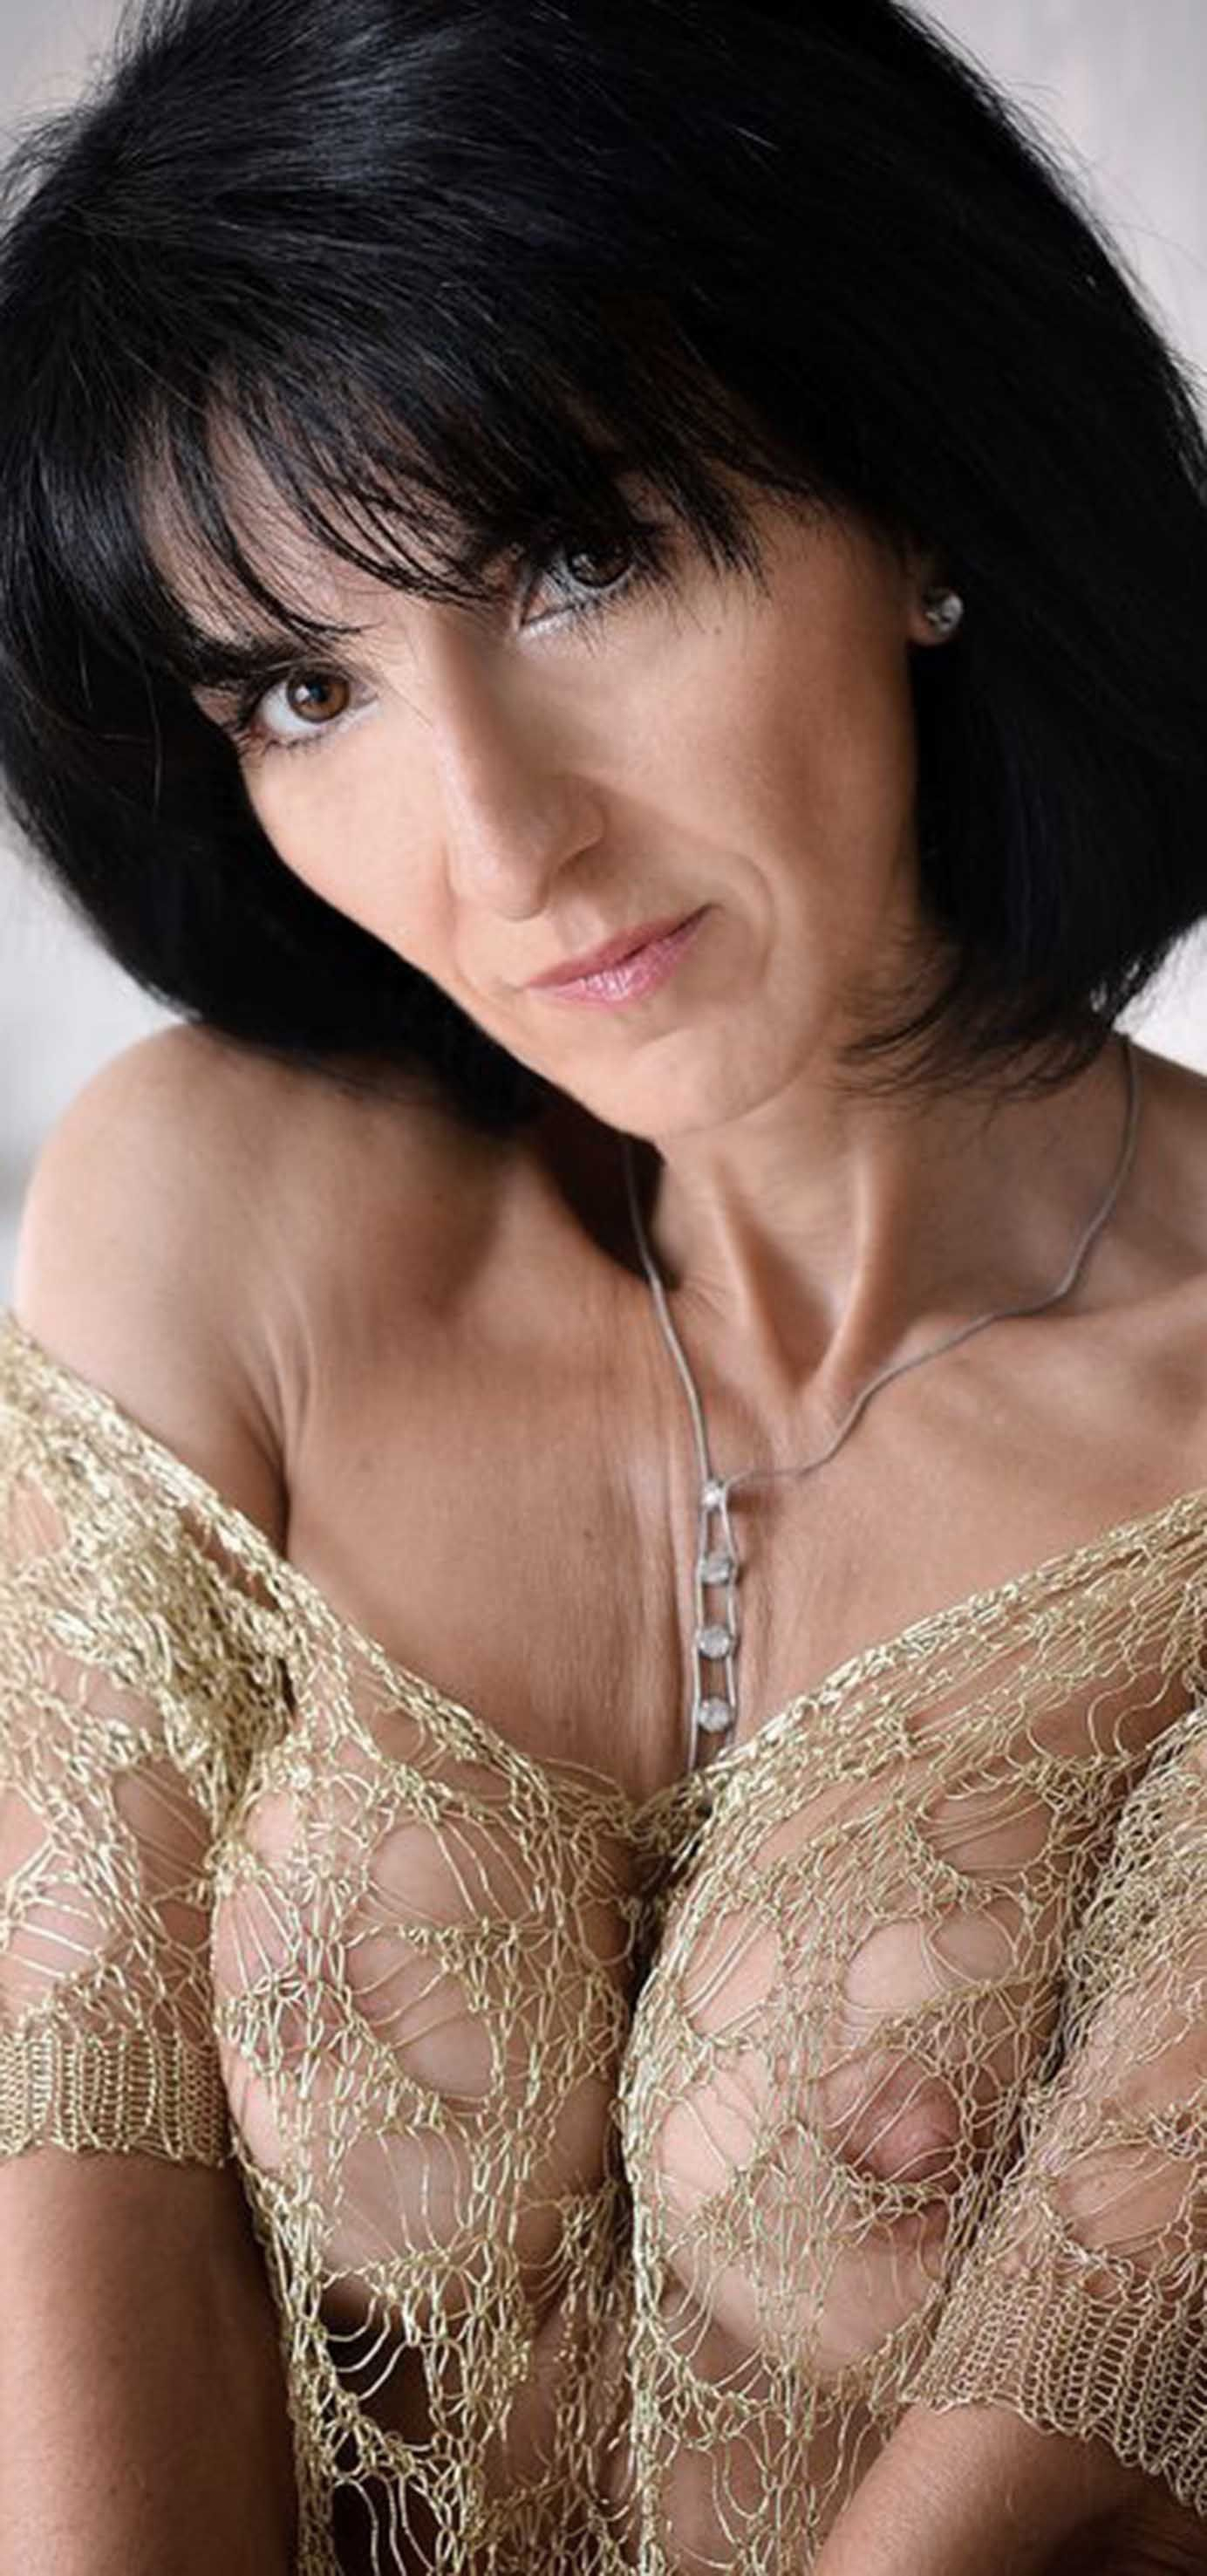 particularly gorgeous | mature and hot | pinterest | woman